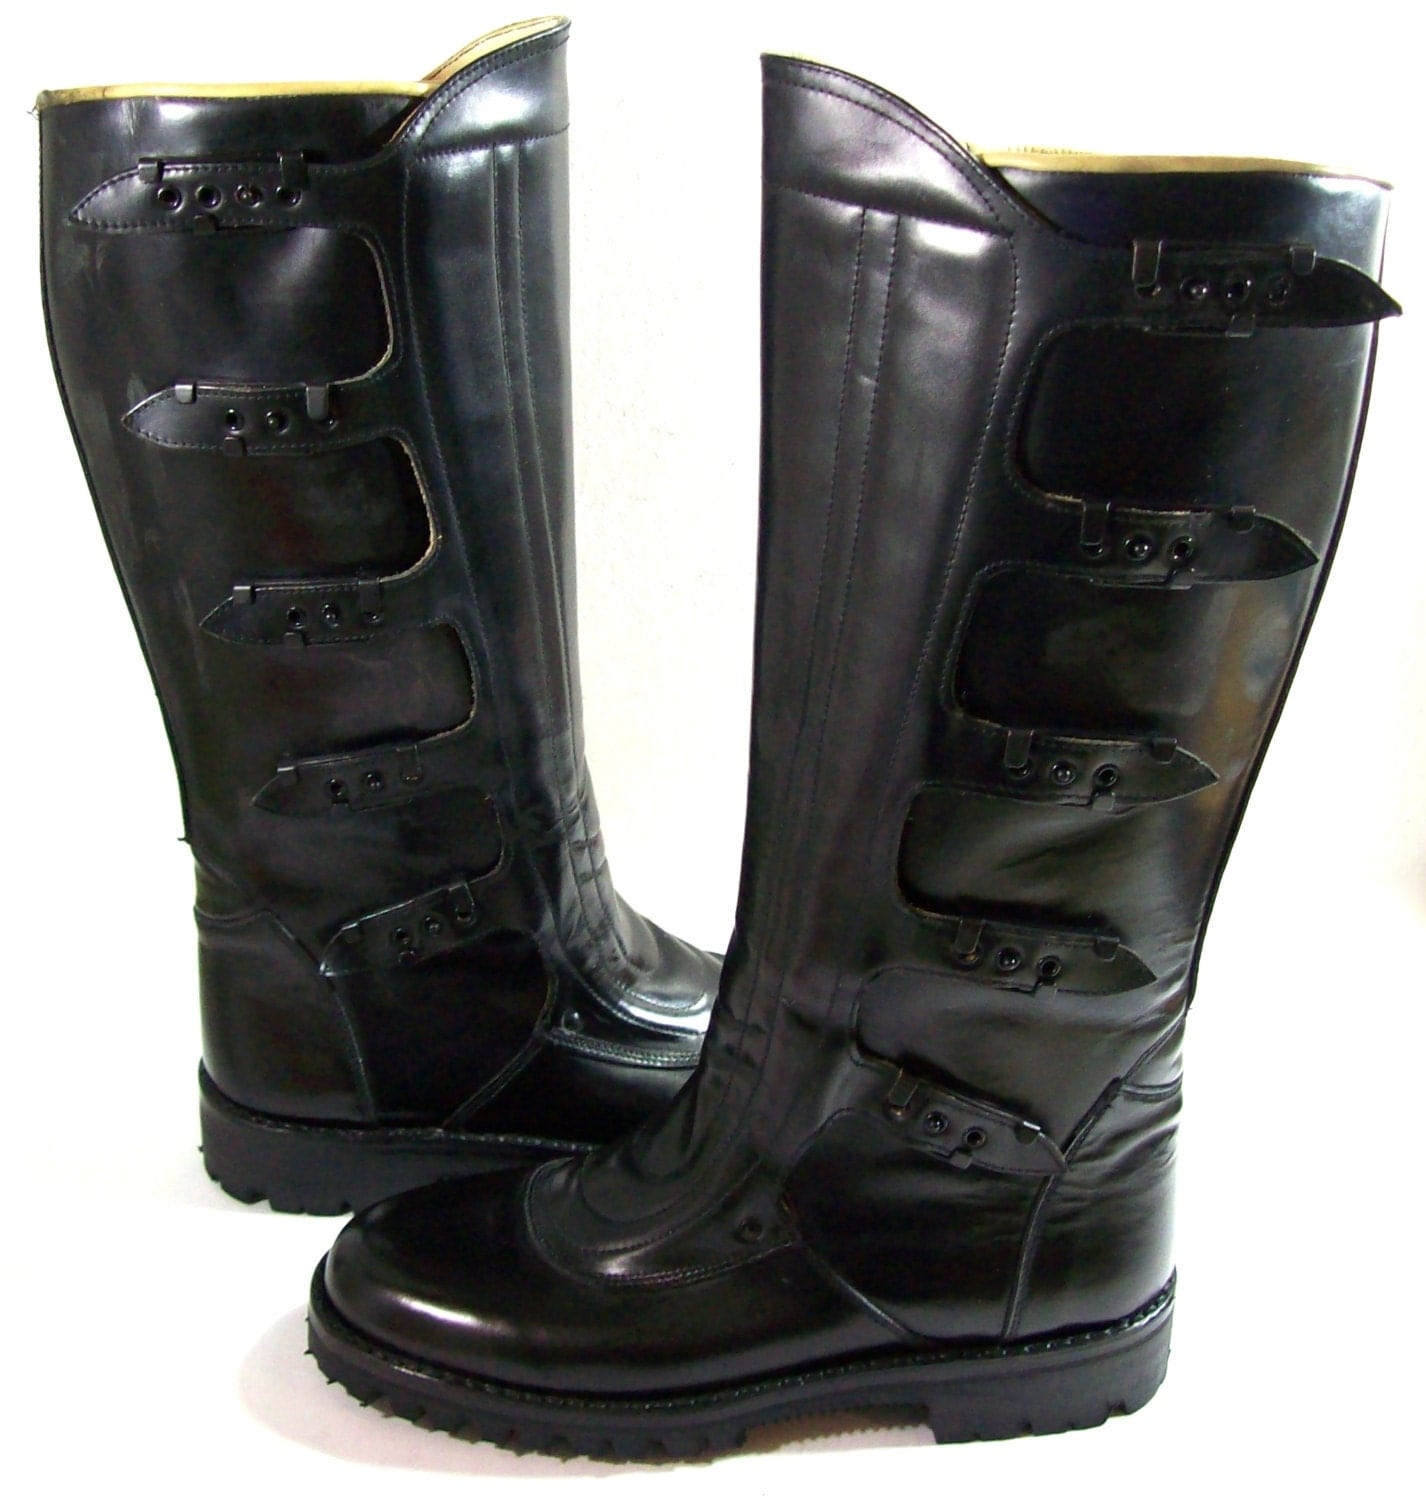 Motorcycle boots us size 9 5eu size 43 by retrovintageplanet Police motor boots